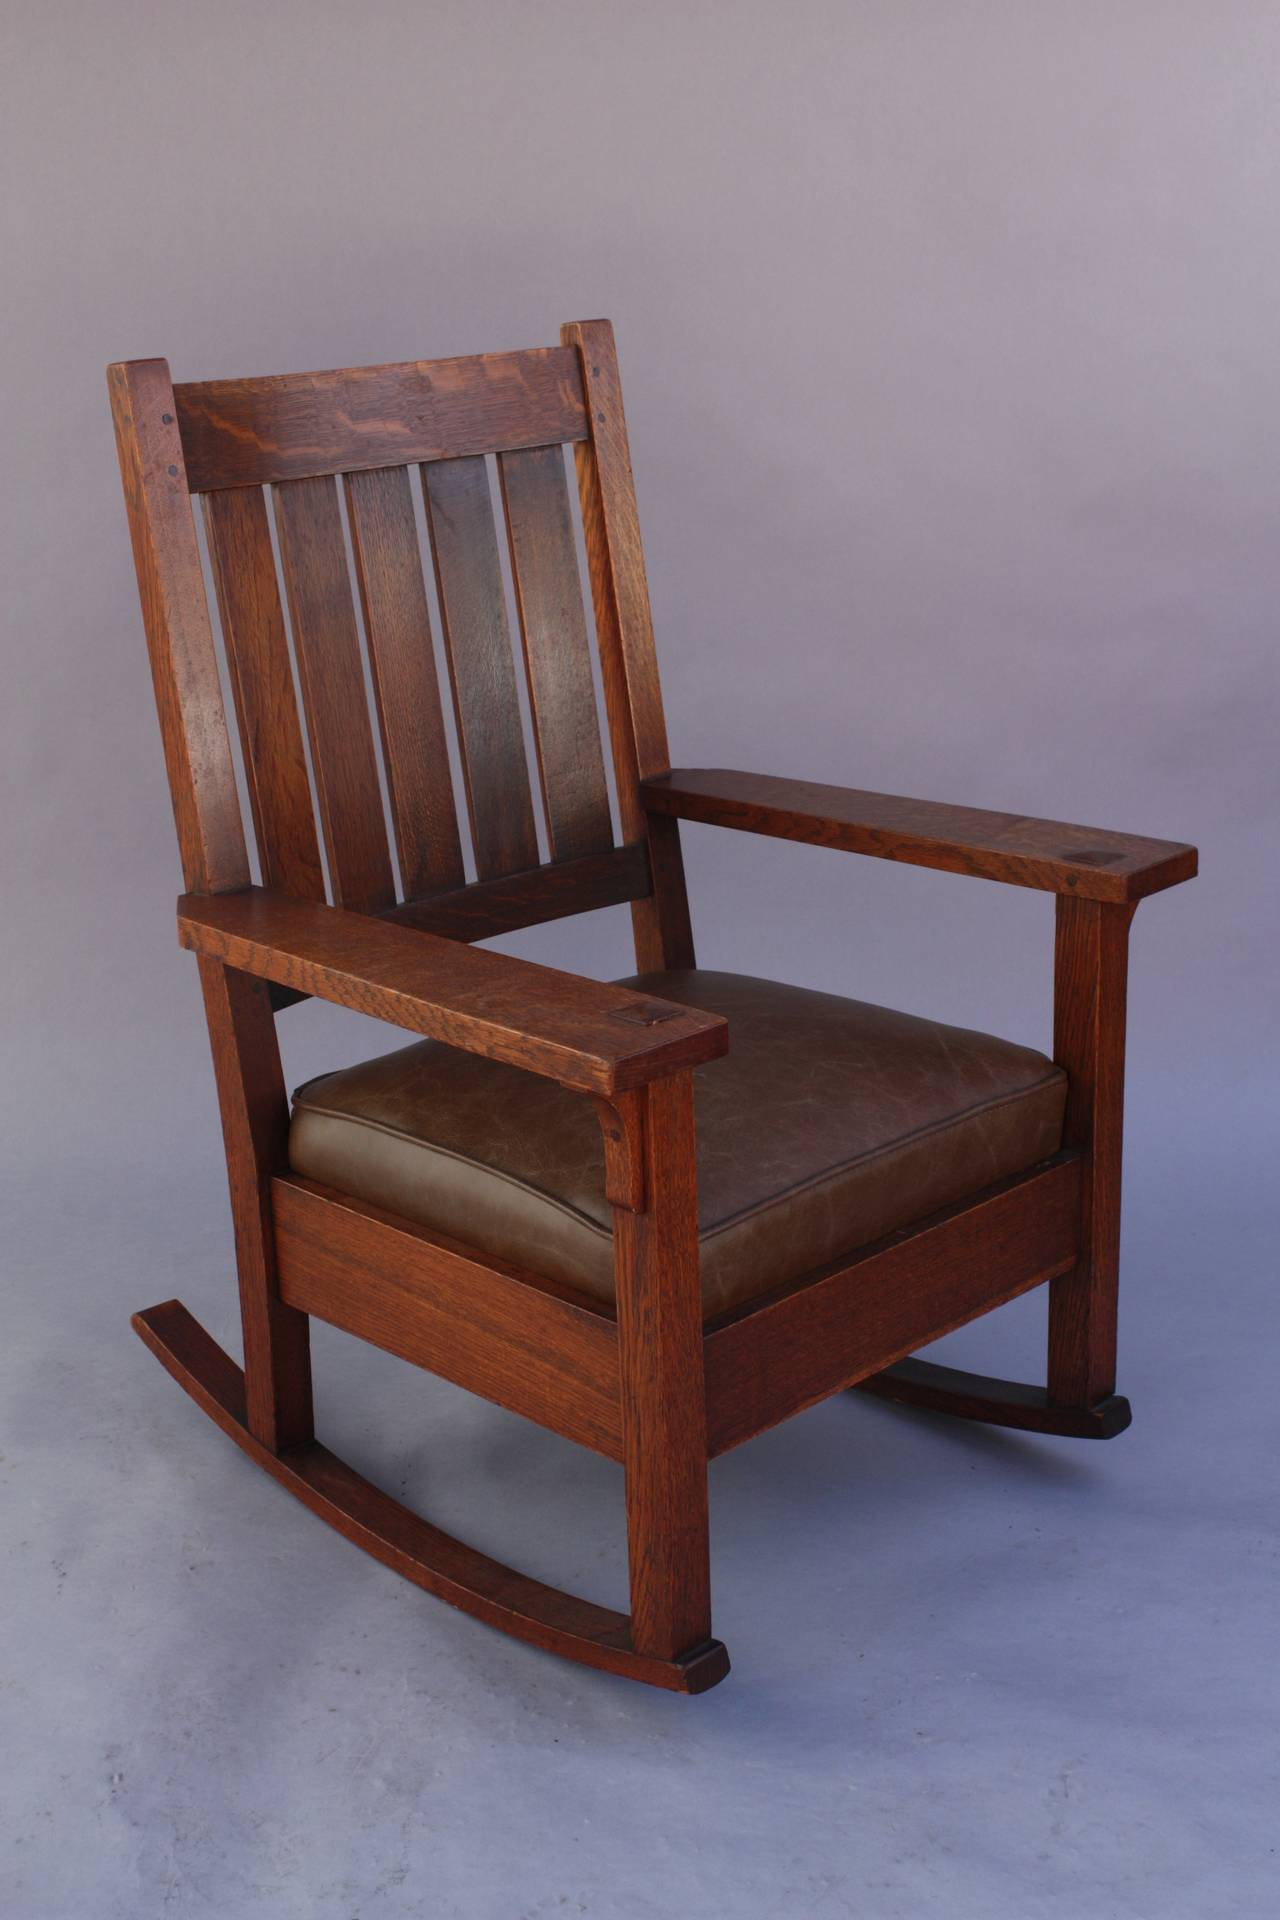 Rocking Chair Eames Rocker Attributed To Gustav Stickley, Circa 1910 At 1stdibs